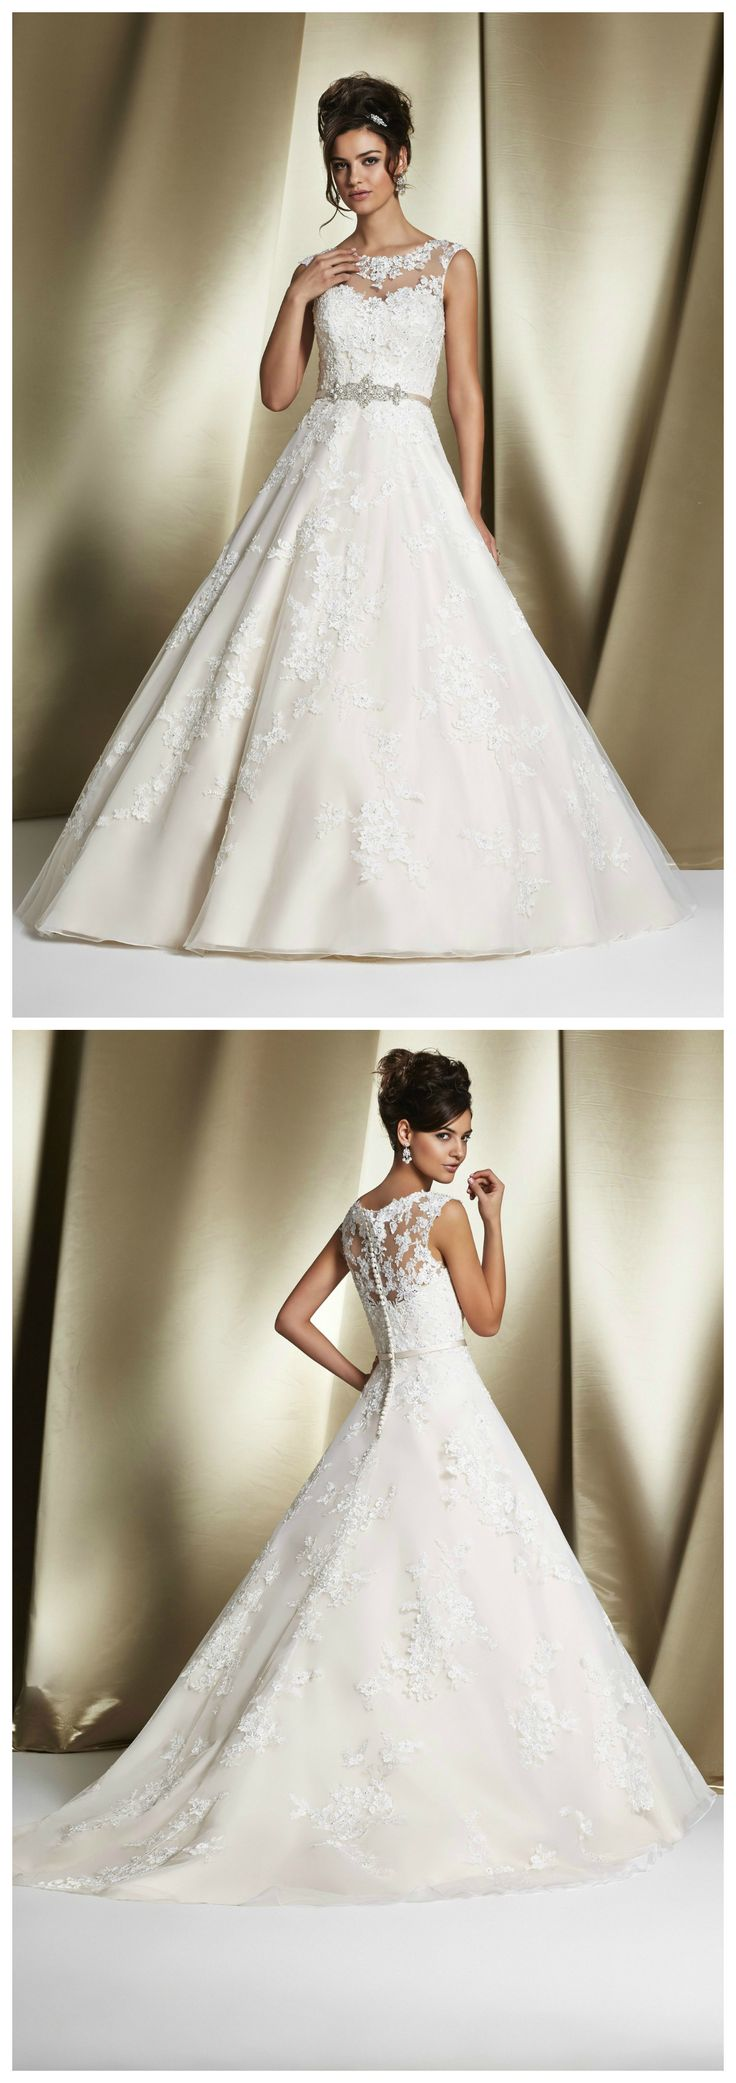 Christmas wedding dress 101 - Find This Pin And More On Ball Gown Style Wedding Dresses